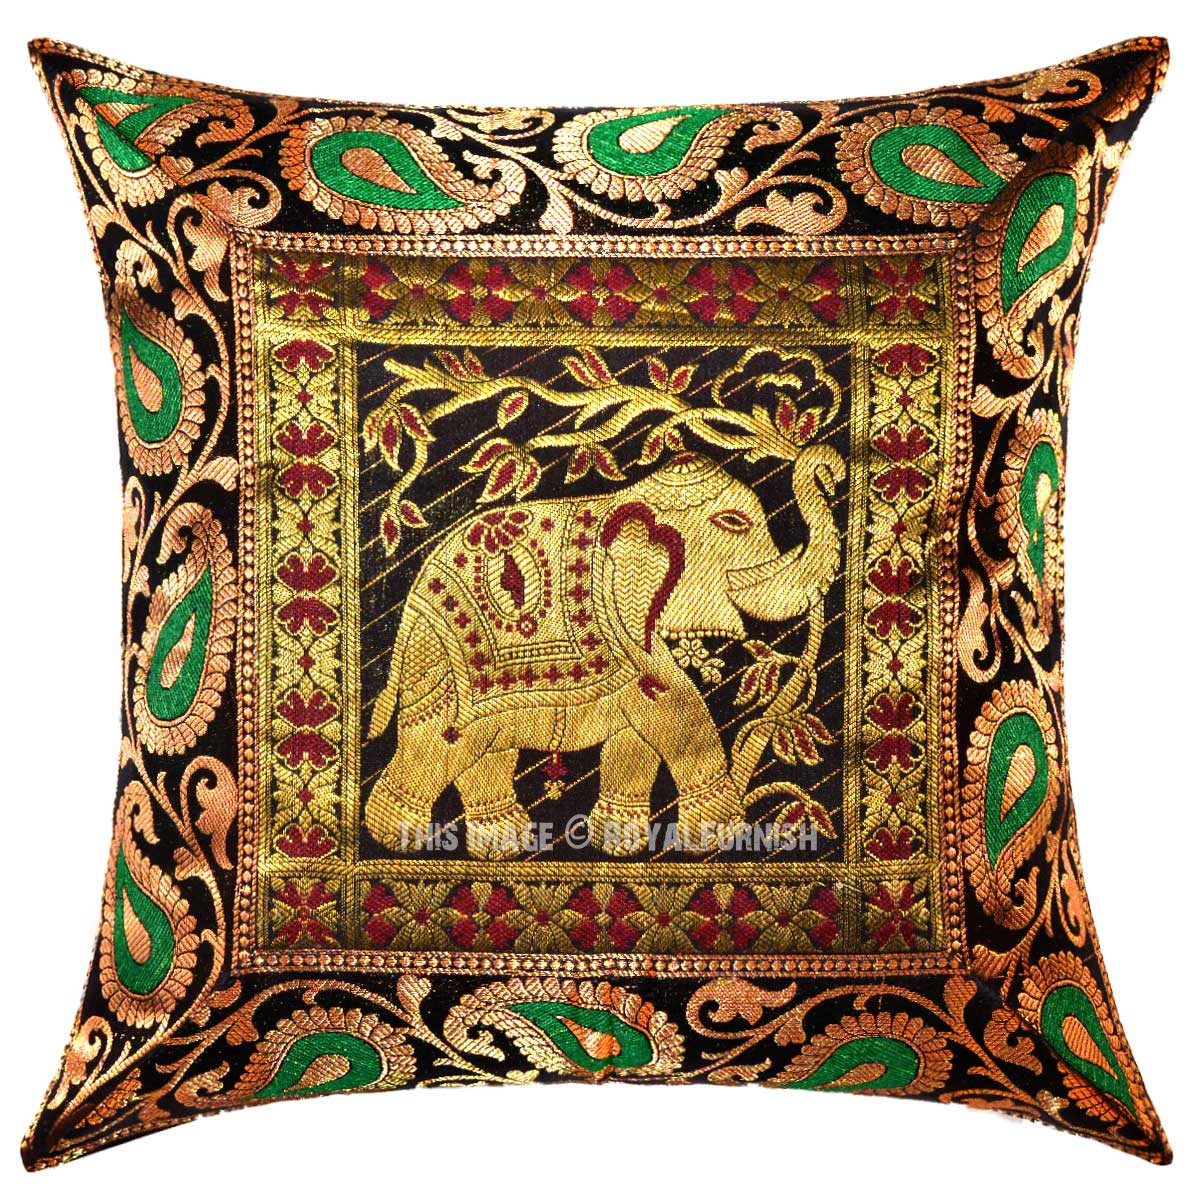 Black Decorative Pillow Cases : Black Decorative and Accent Outdoor Elephant Silk Throw Pillow Case 16x16 Inch - RoyalFurnish.com